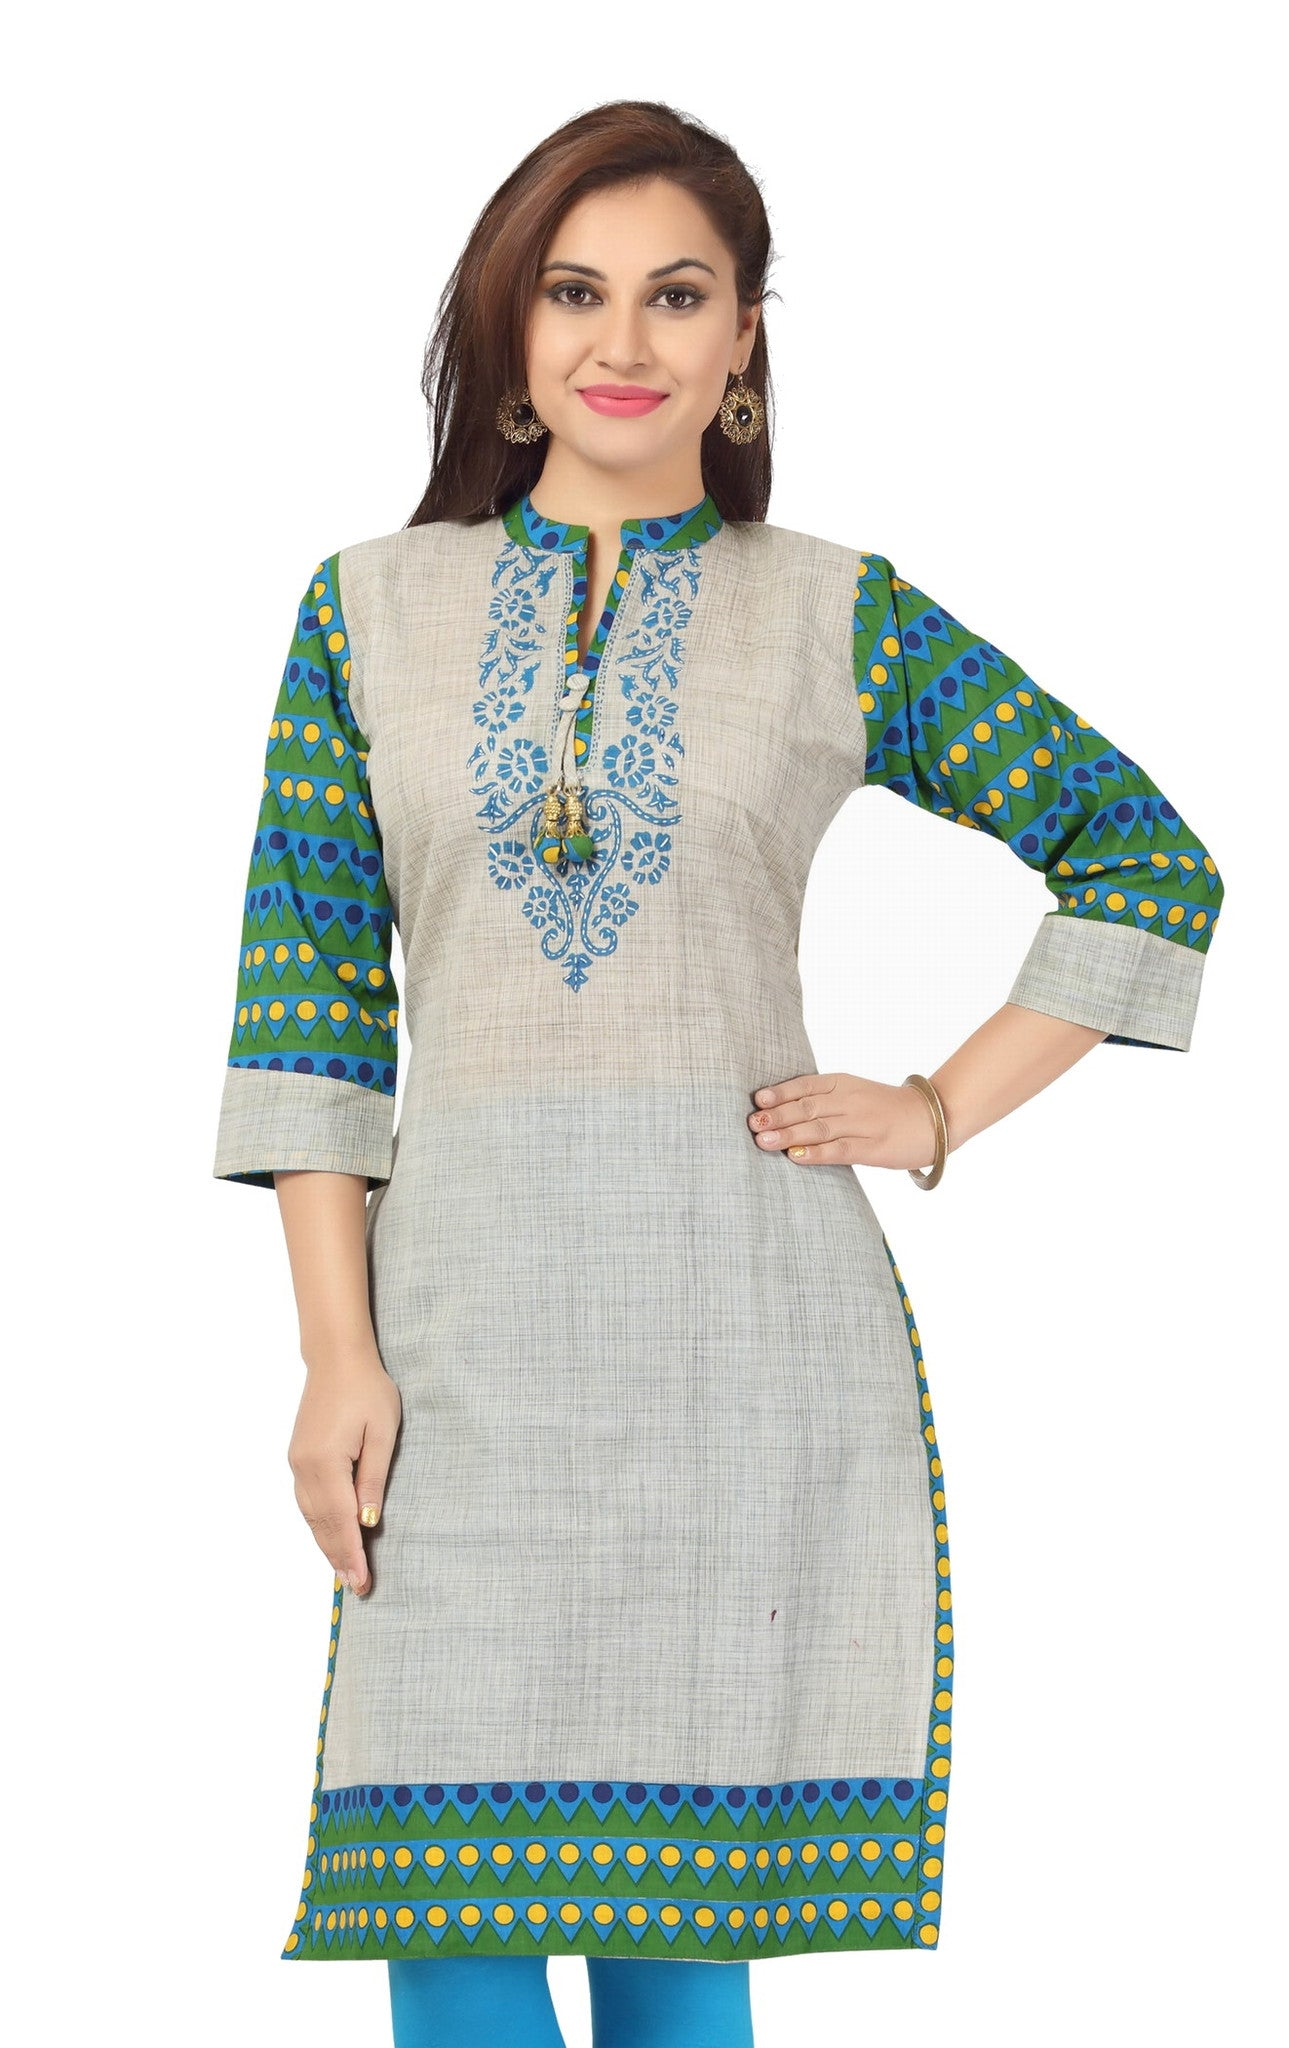 Grey grace long cotton tunic with printed design cotton fabric - Boutique4India Inc.